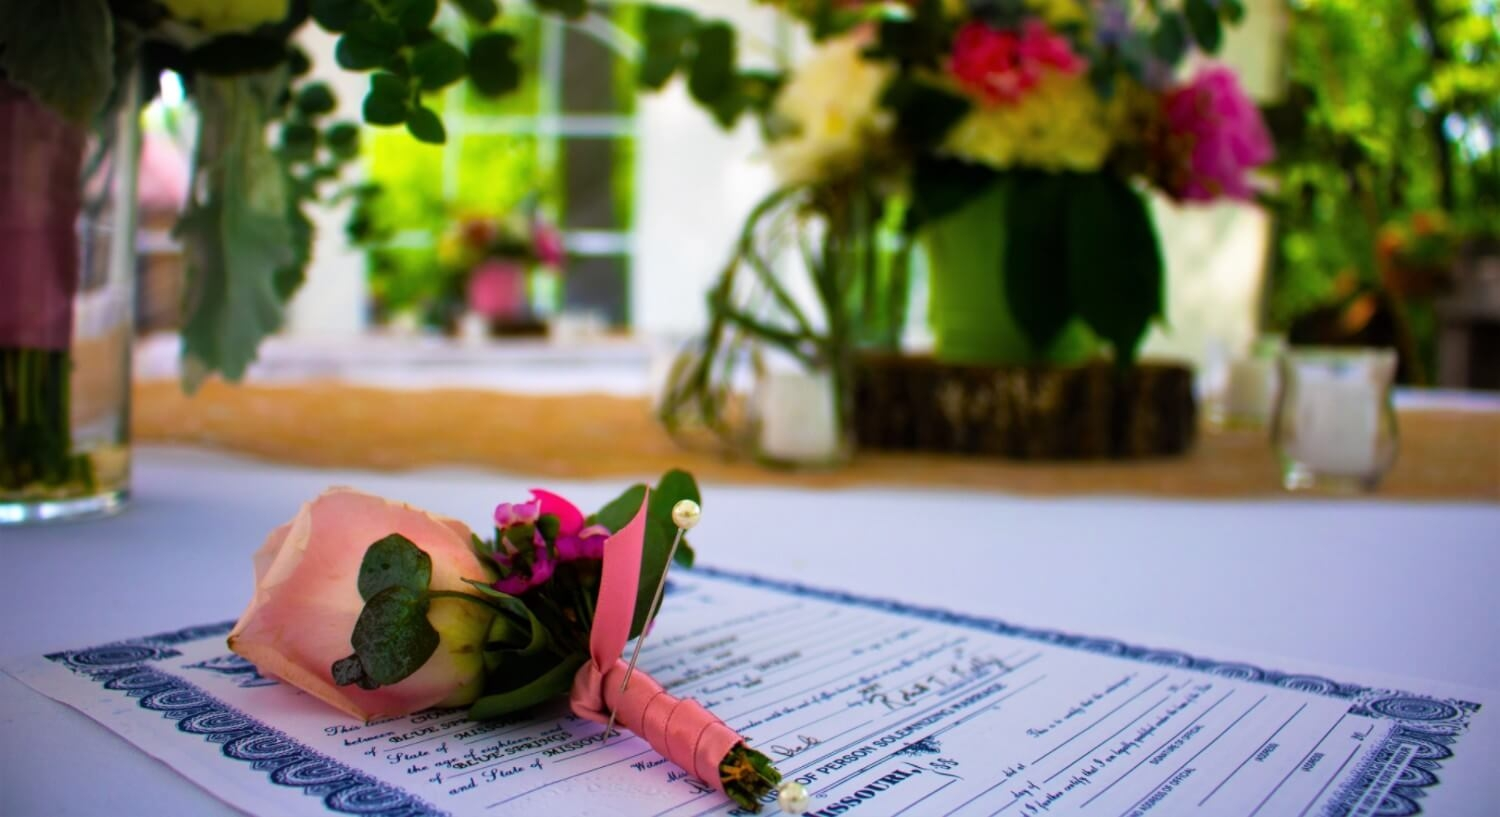 Wedding license on table with pink flower and  fresh flowers in background